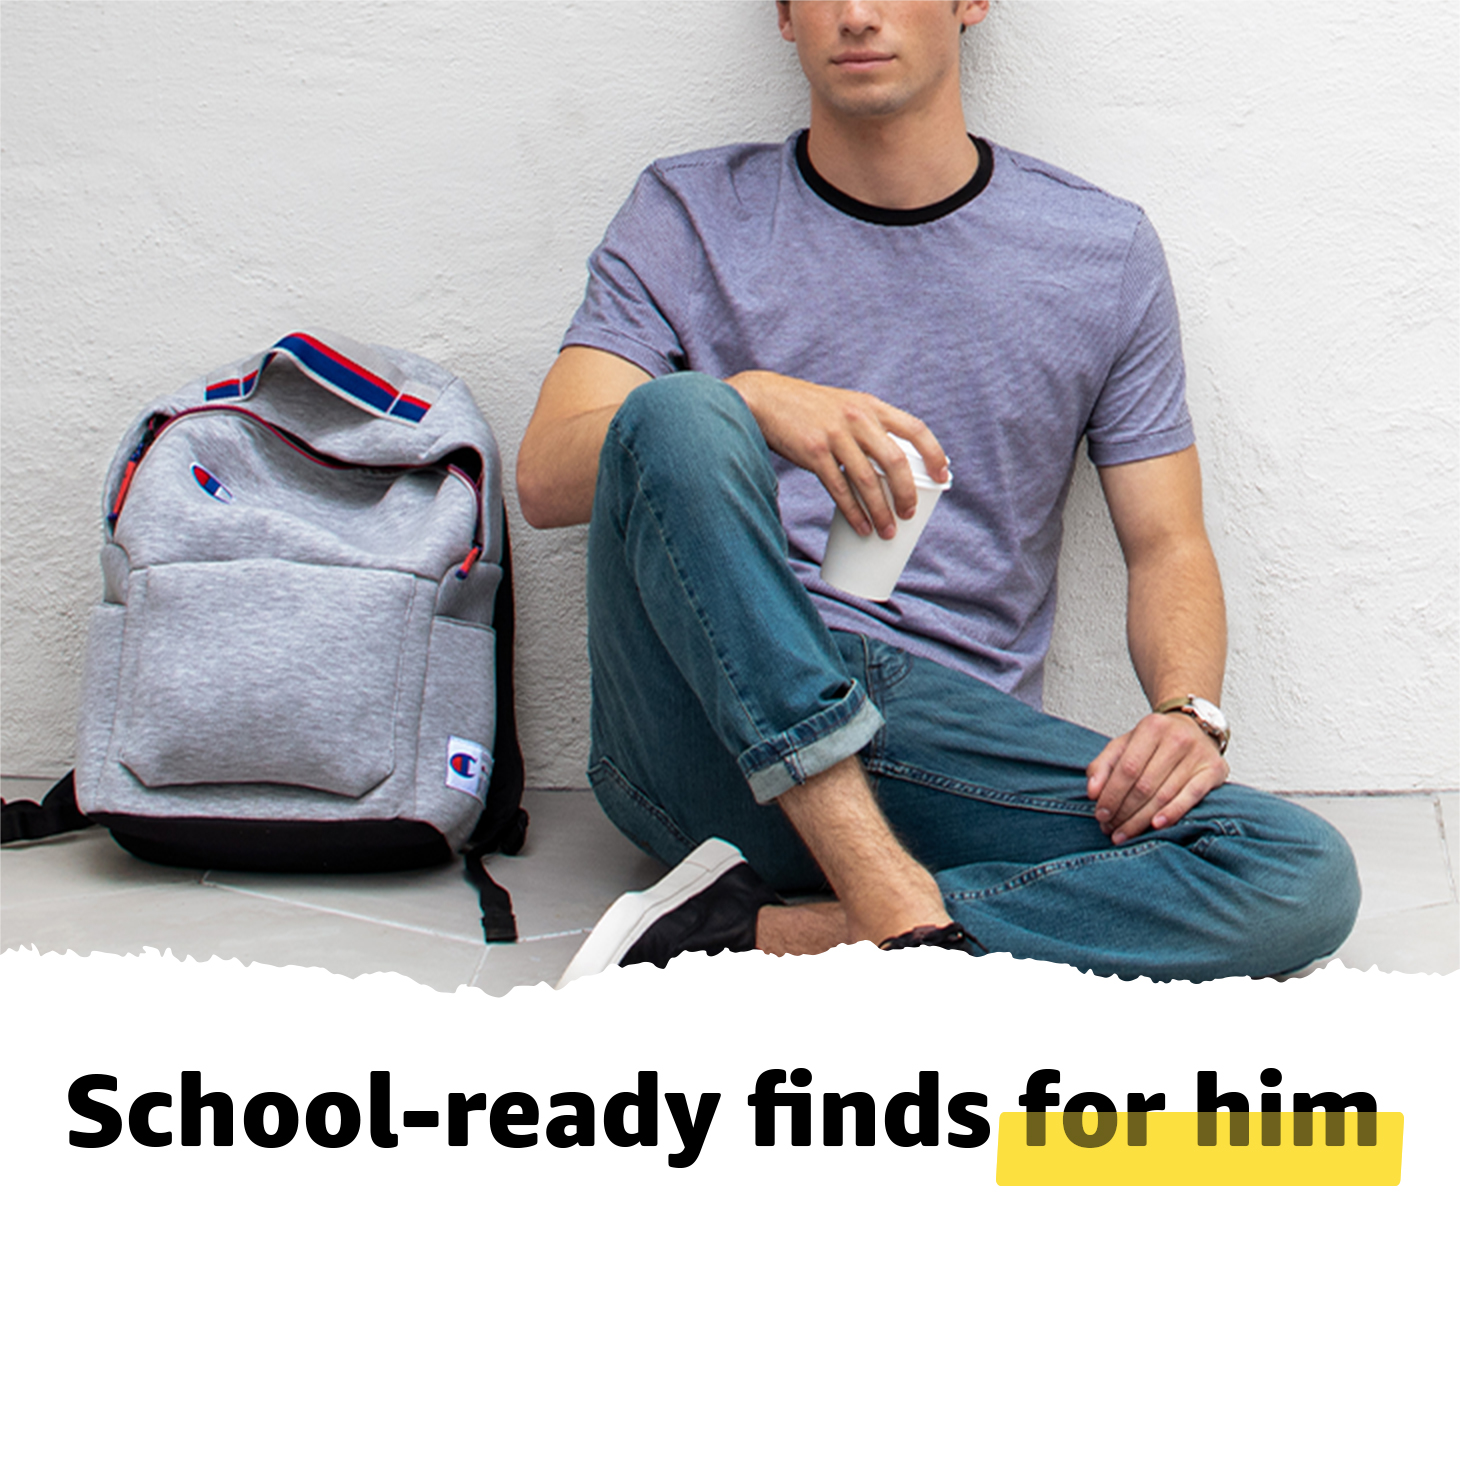 School-ready finds for him